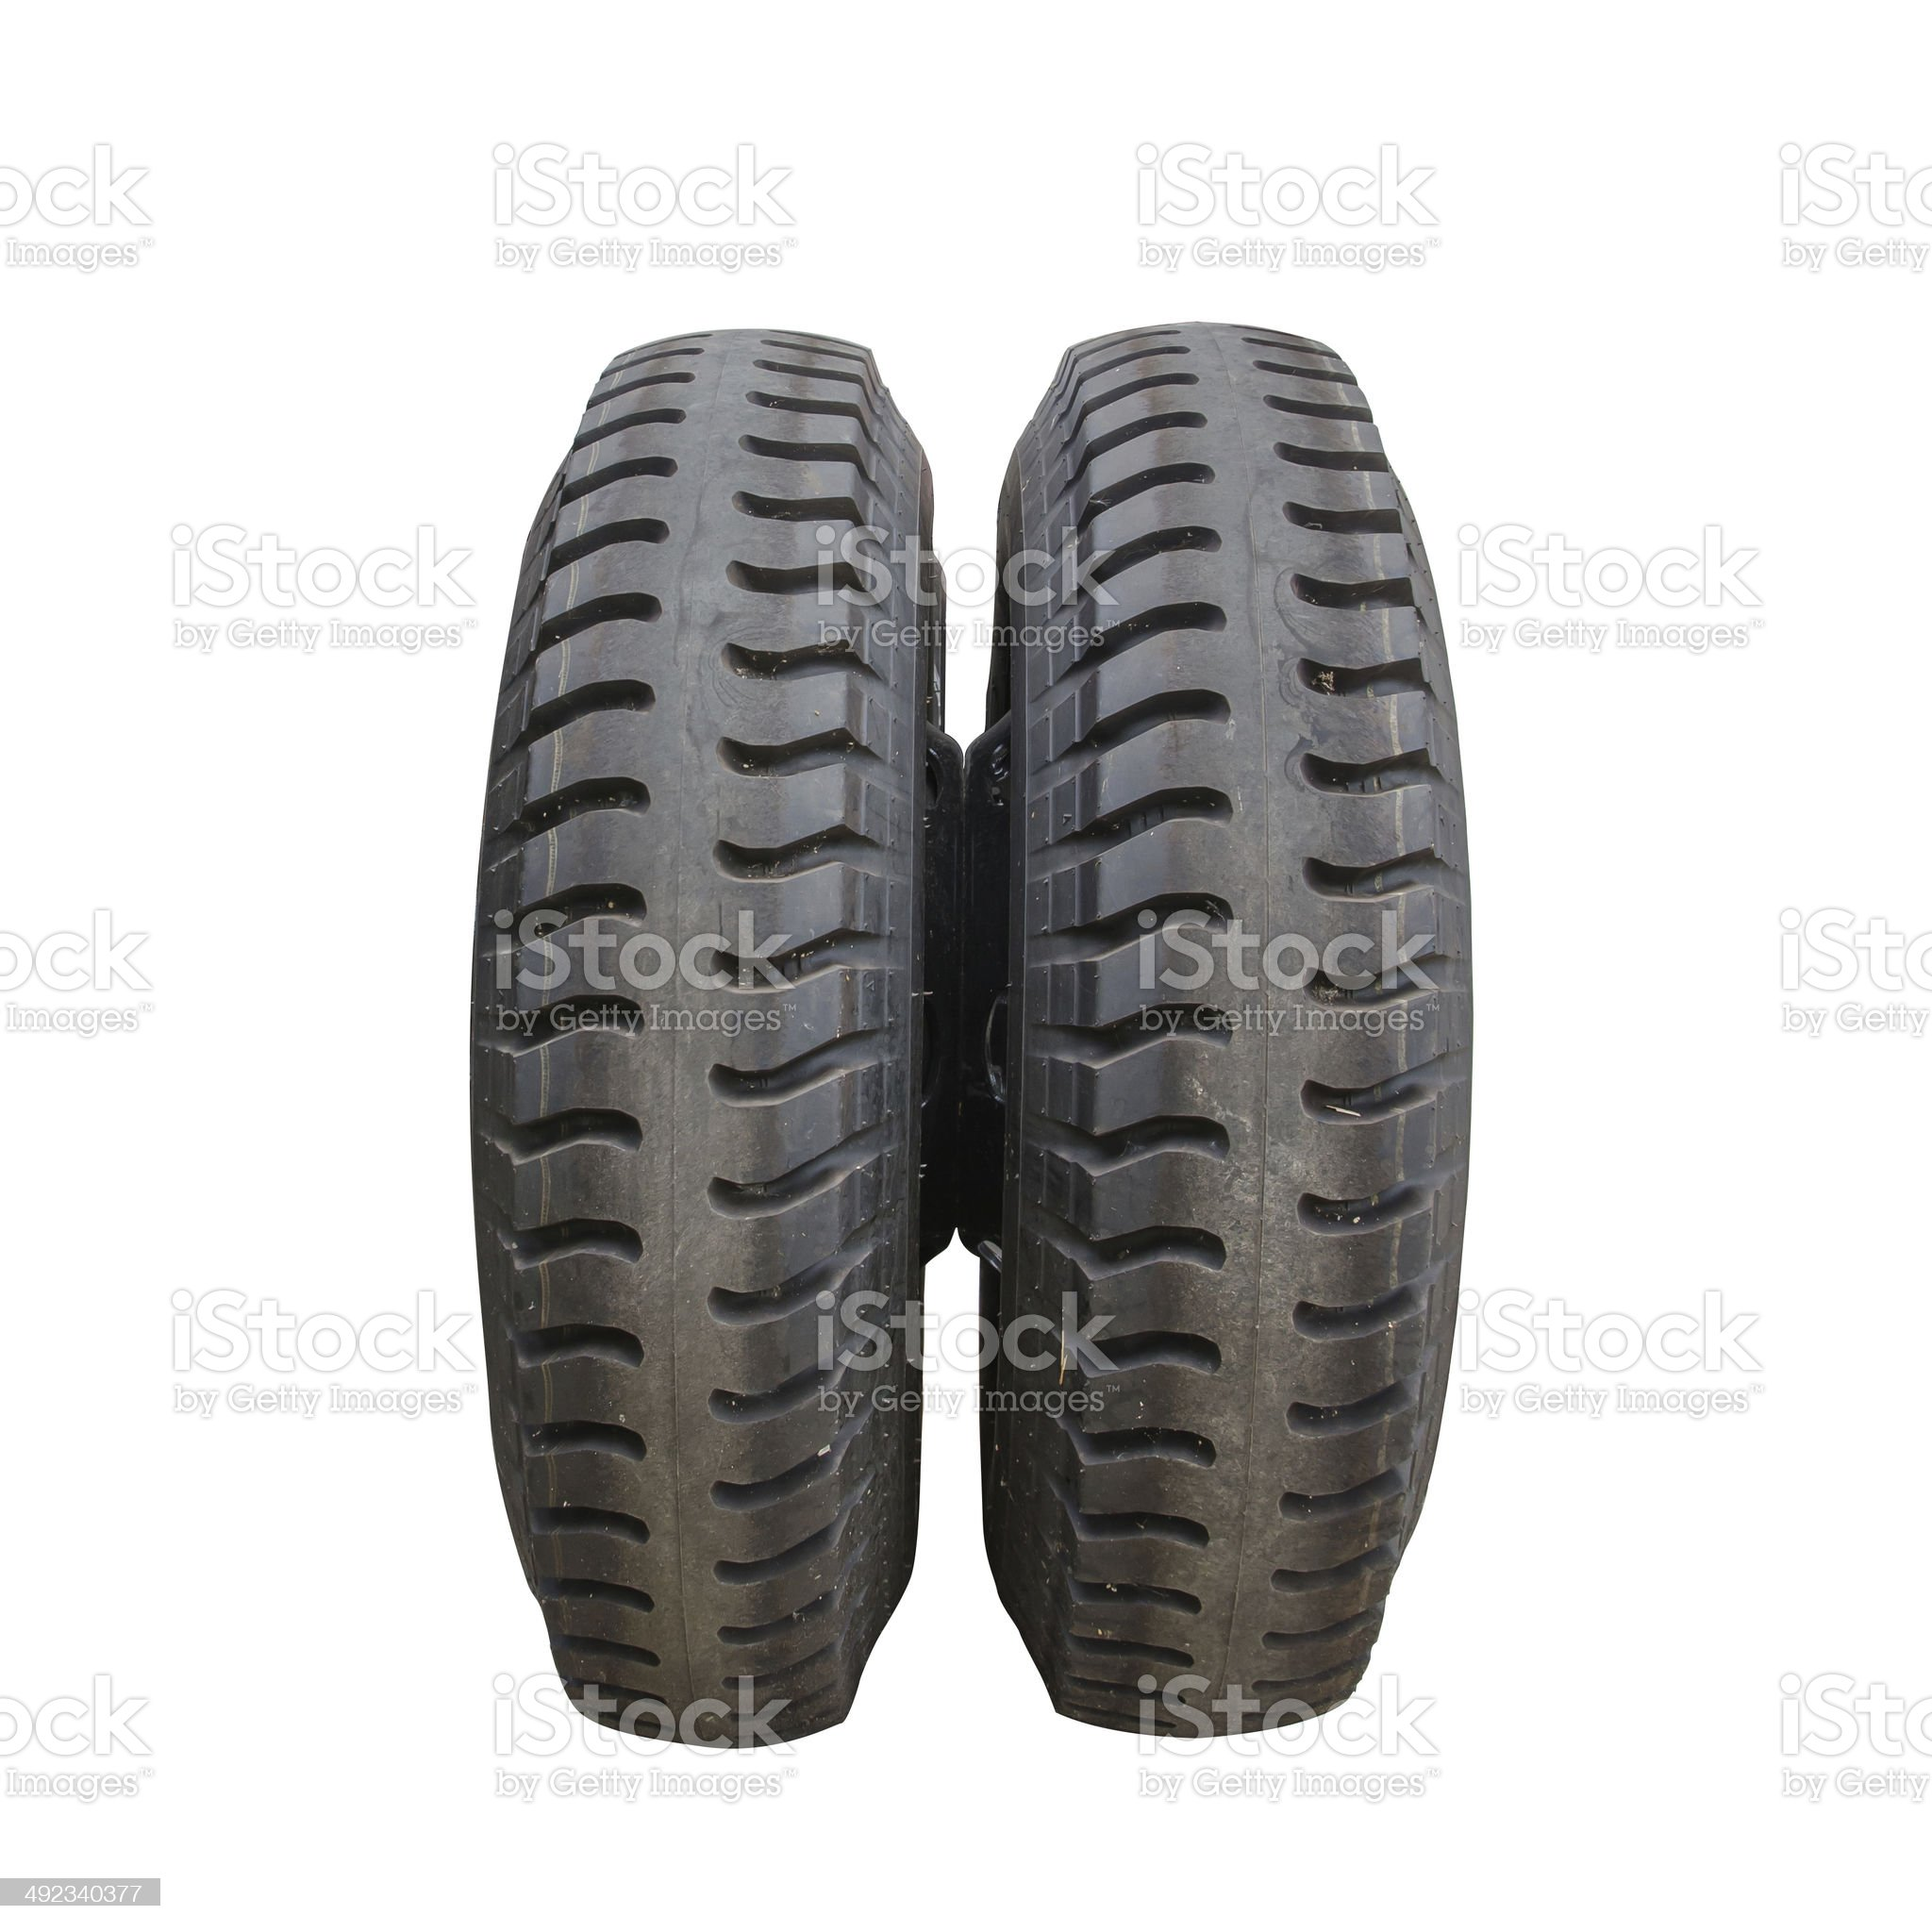 Isolated truck wheel and tire royalty-free stock photo